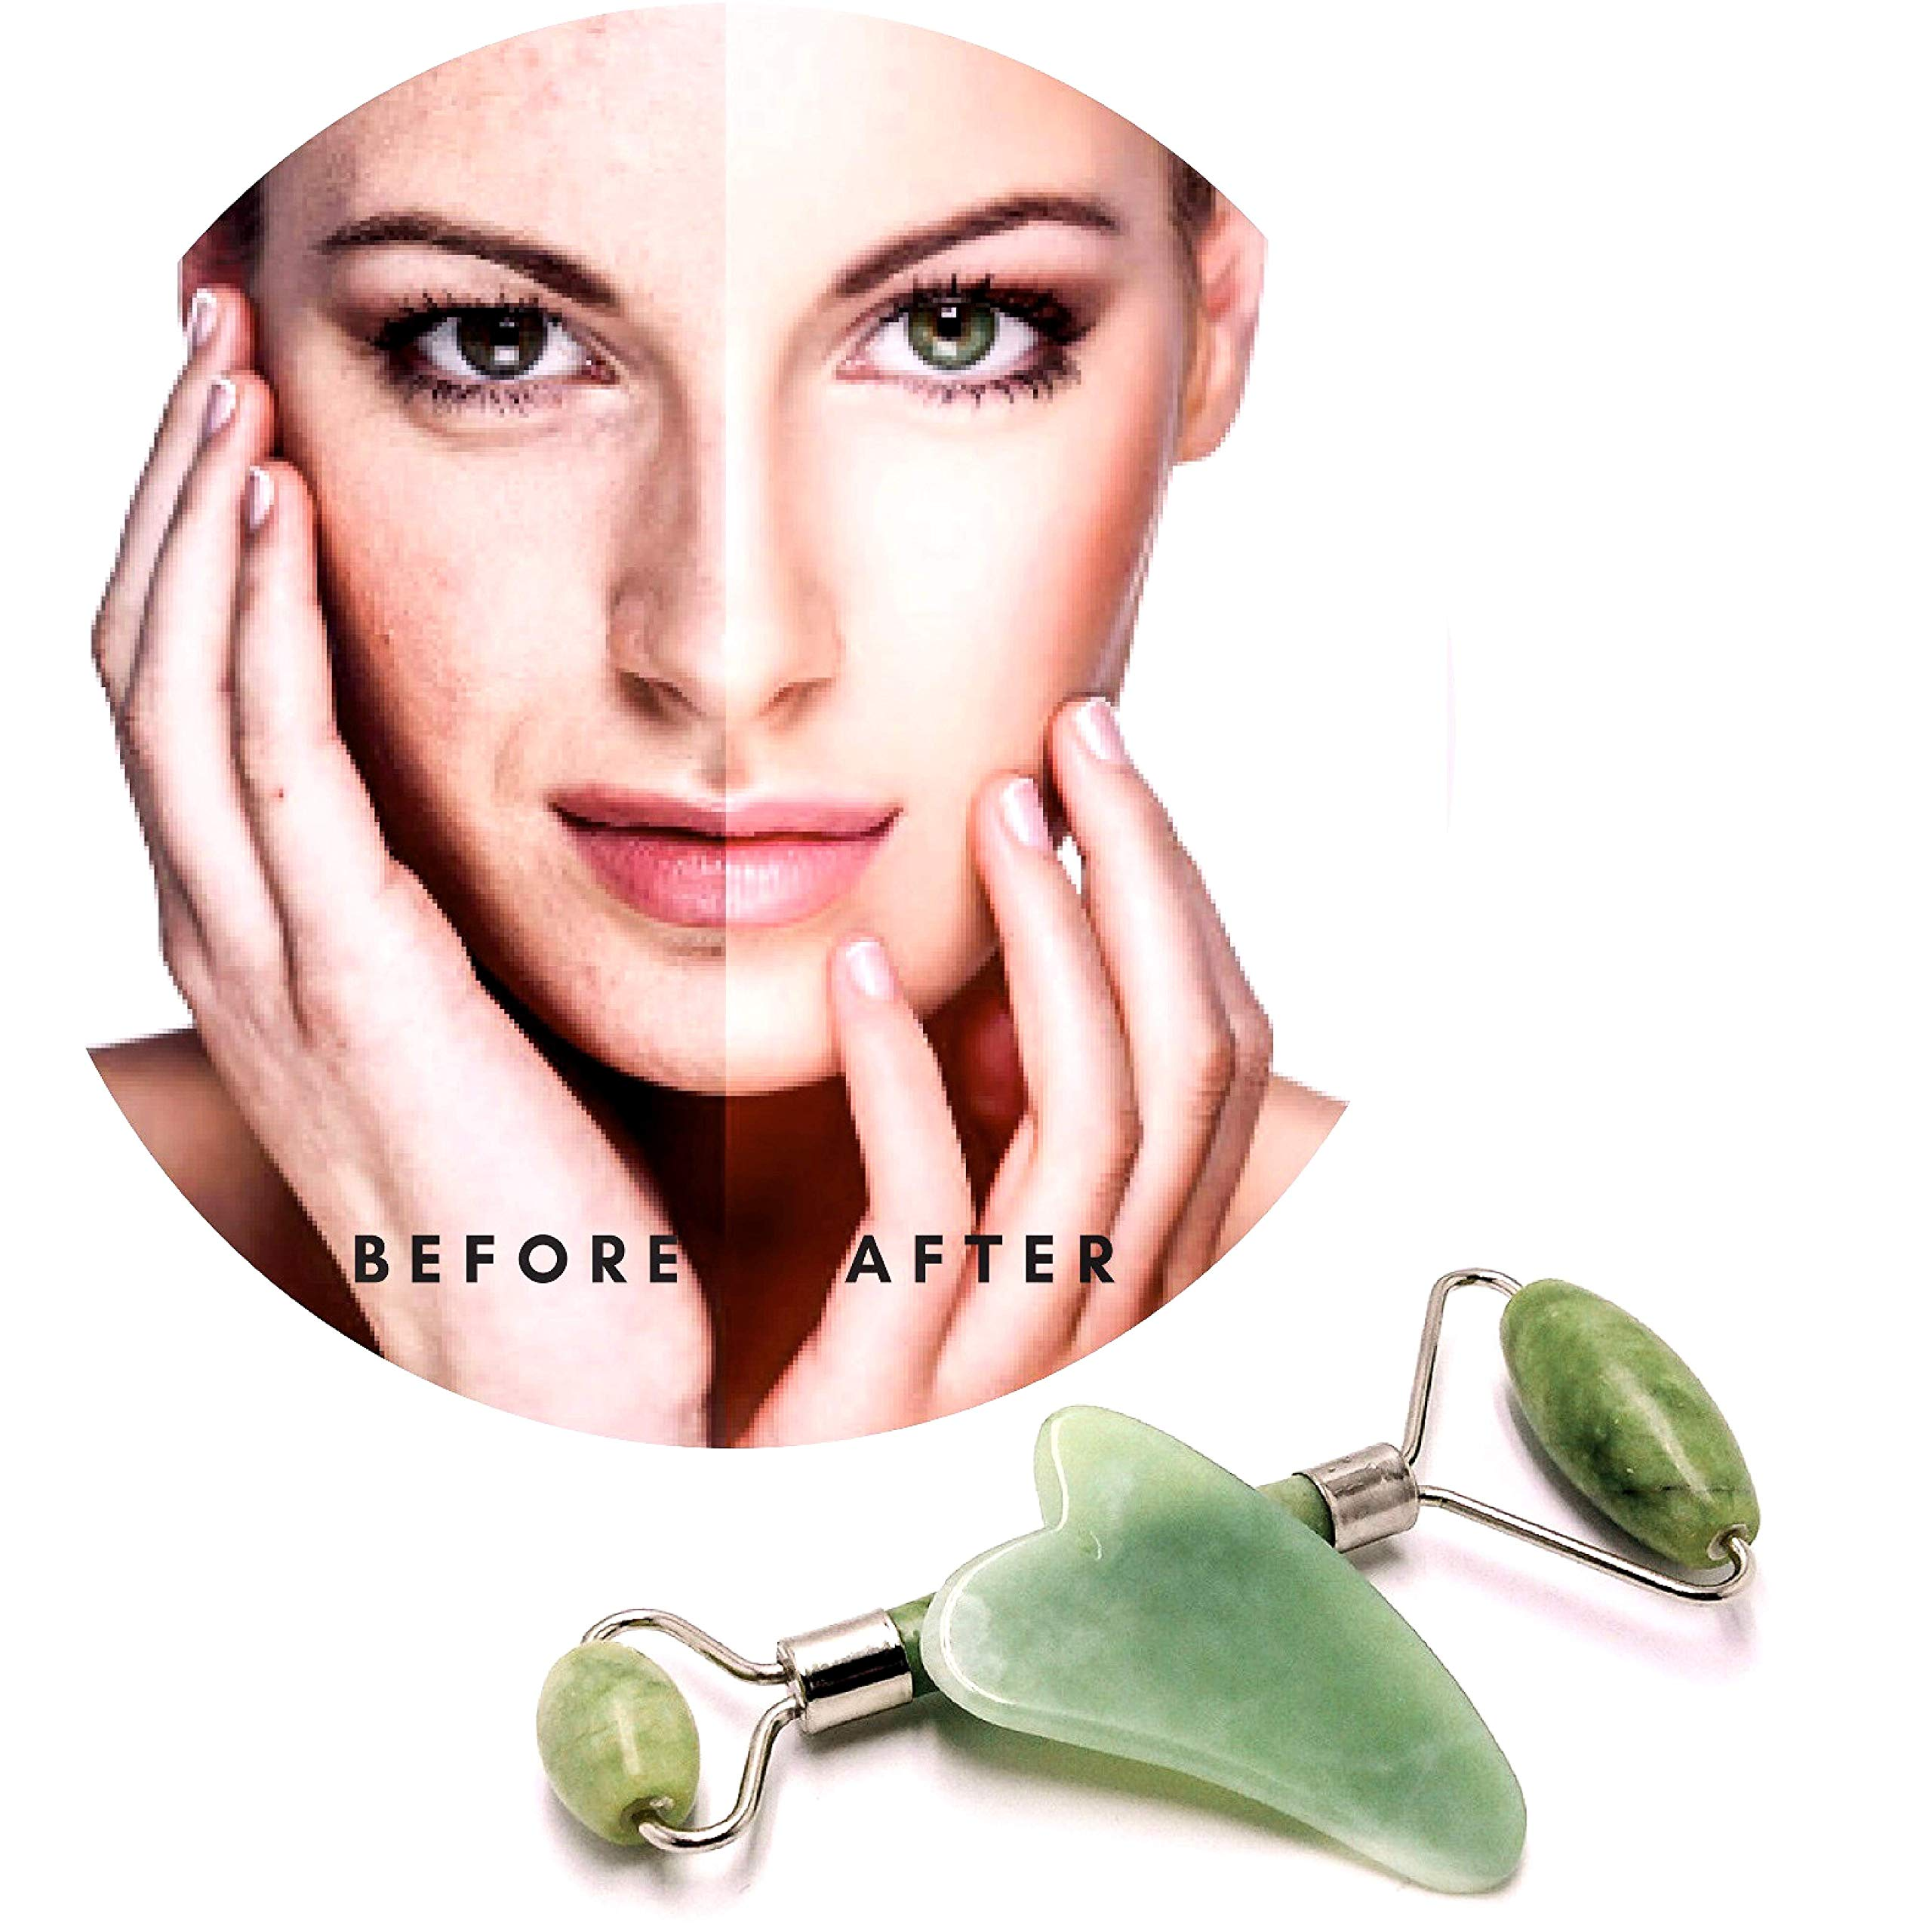 100% Real Jade Roller With Added Jade GuaSha Stone. Great for Skin Rejuvenation, Anti-Aging, Reducing Wrinkles, Puffy Eyes and Face Massages also Comes With Carrying Pouch.